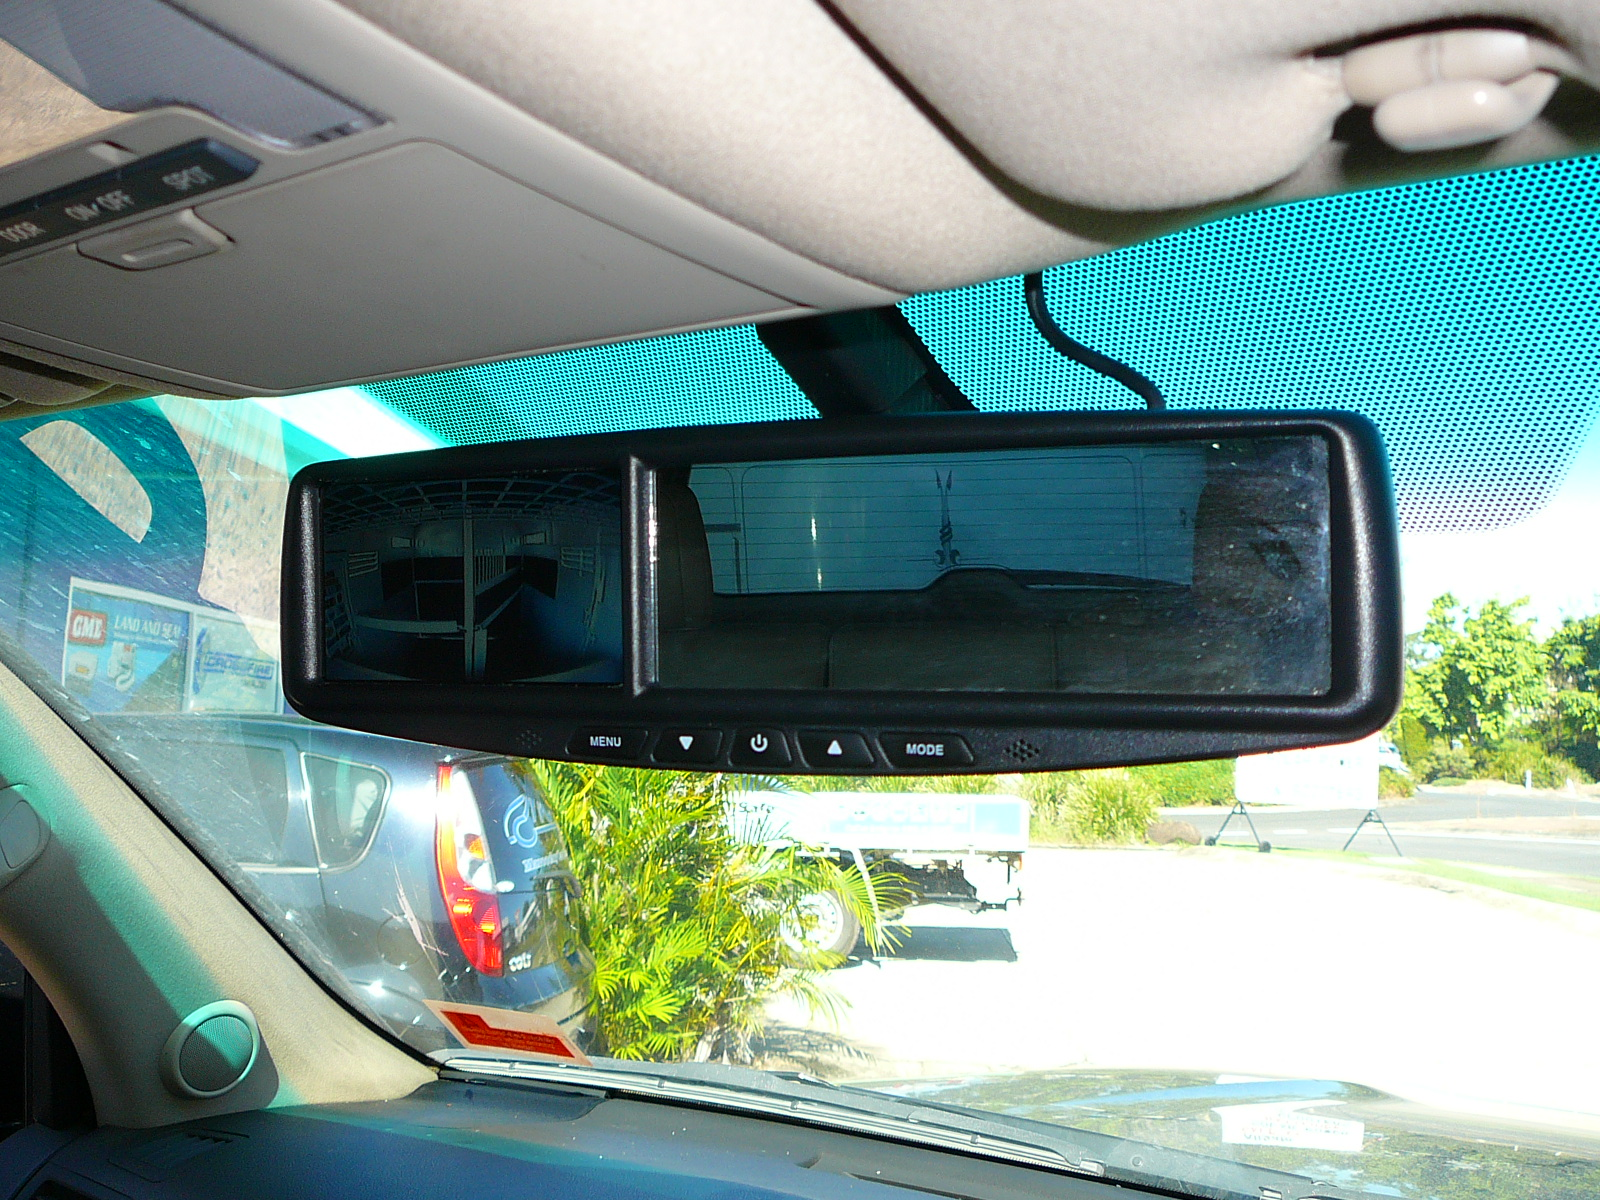 Toyota Landcruiser Series And Horse Float Dual Camera Setup With Reverse Mirror Monitor